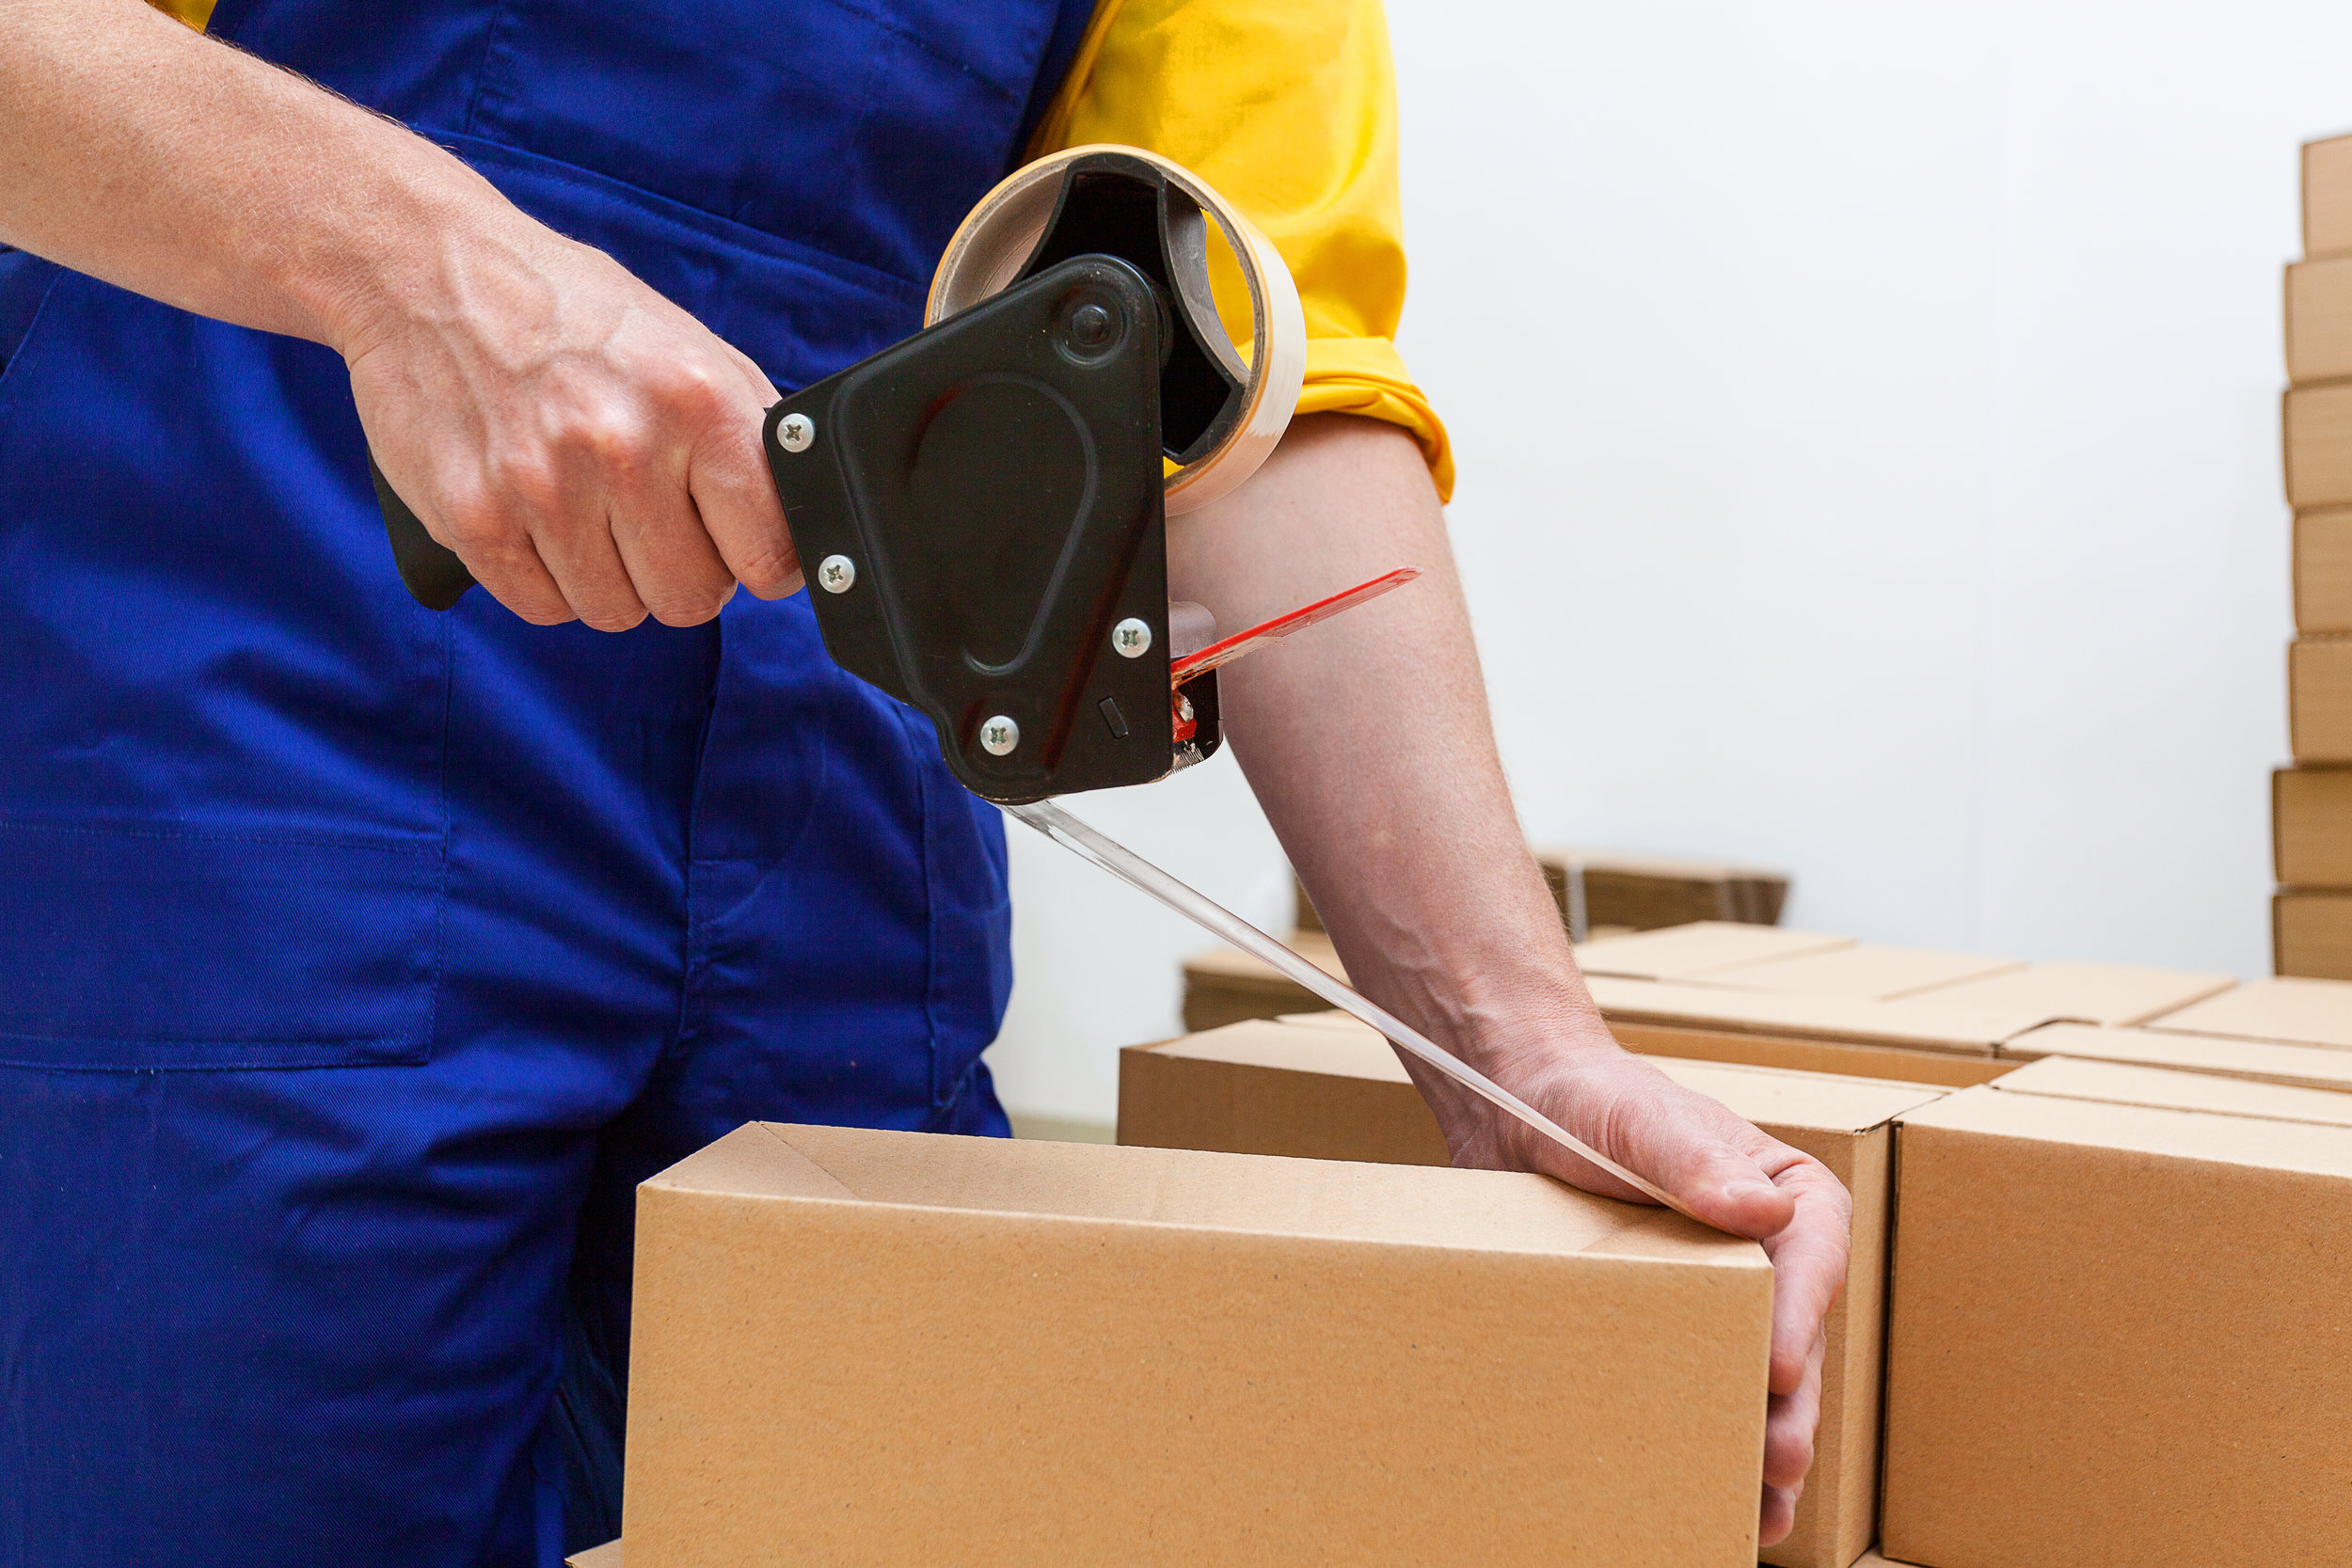 hands of a man sealing cardboard box with hand taper